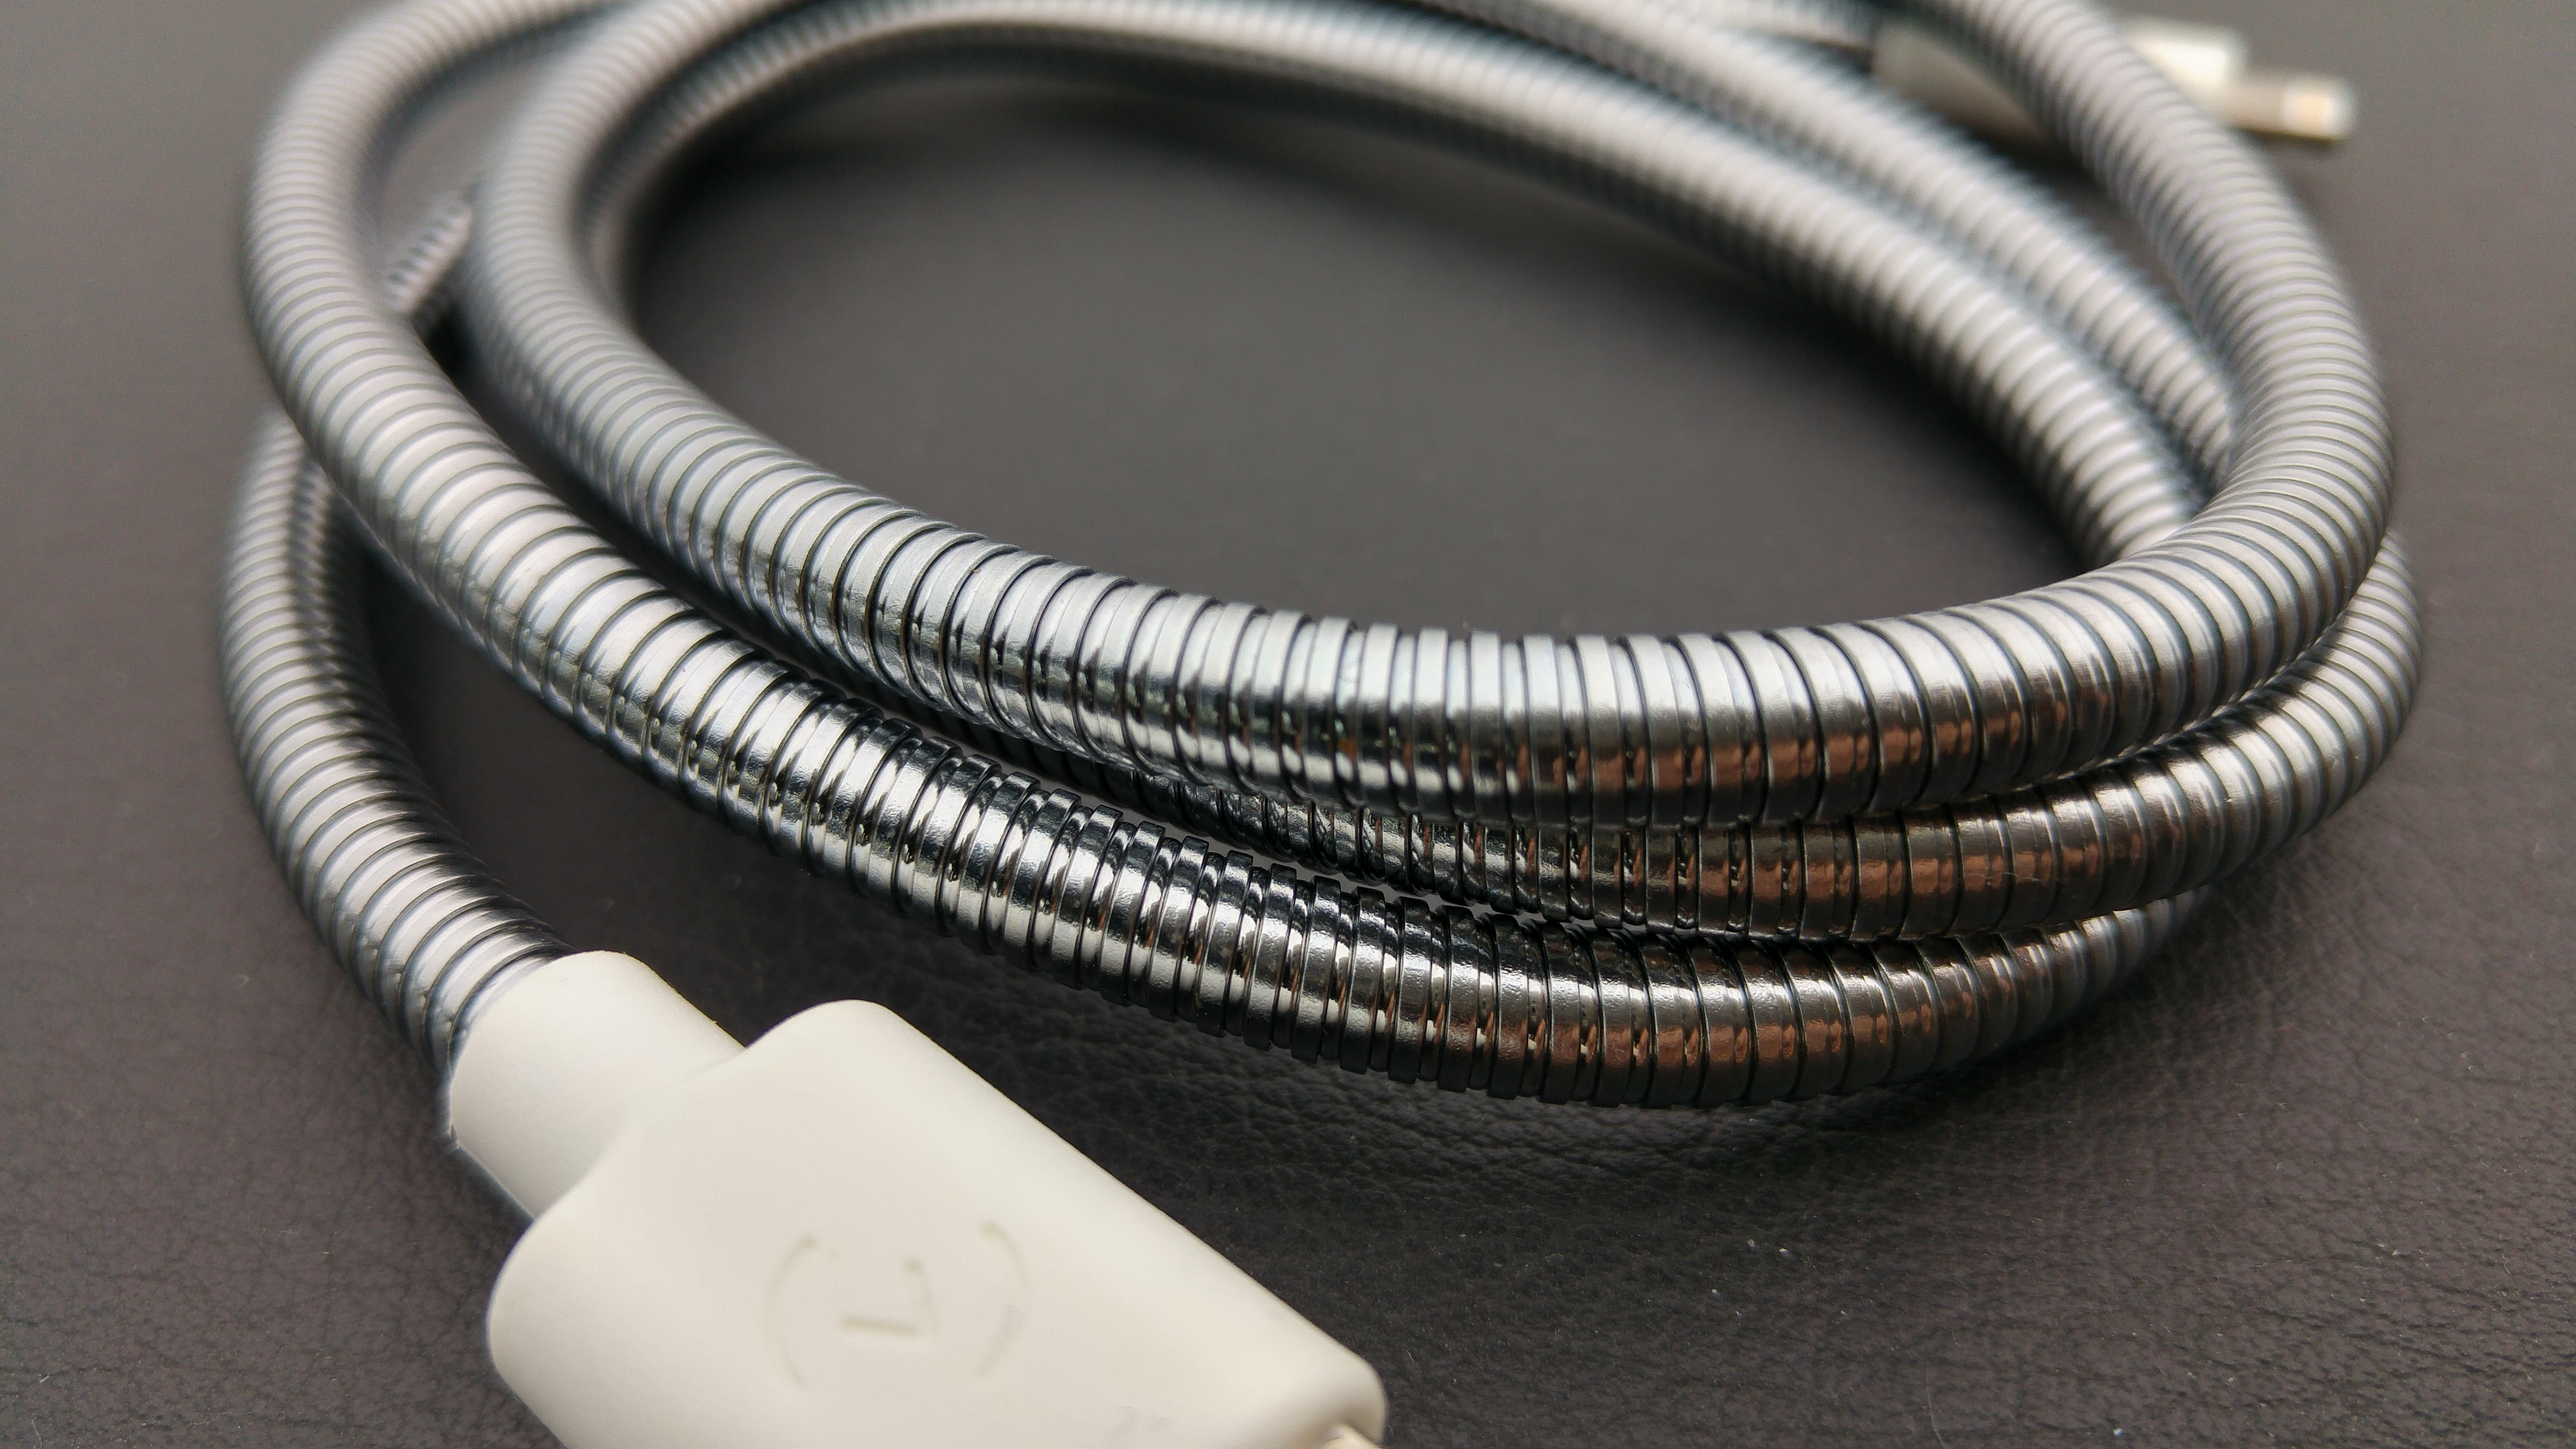 titan the toughest charging cable in the world review titan the toughest charging cable in the world review